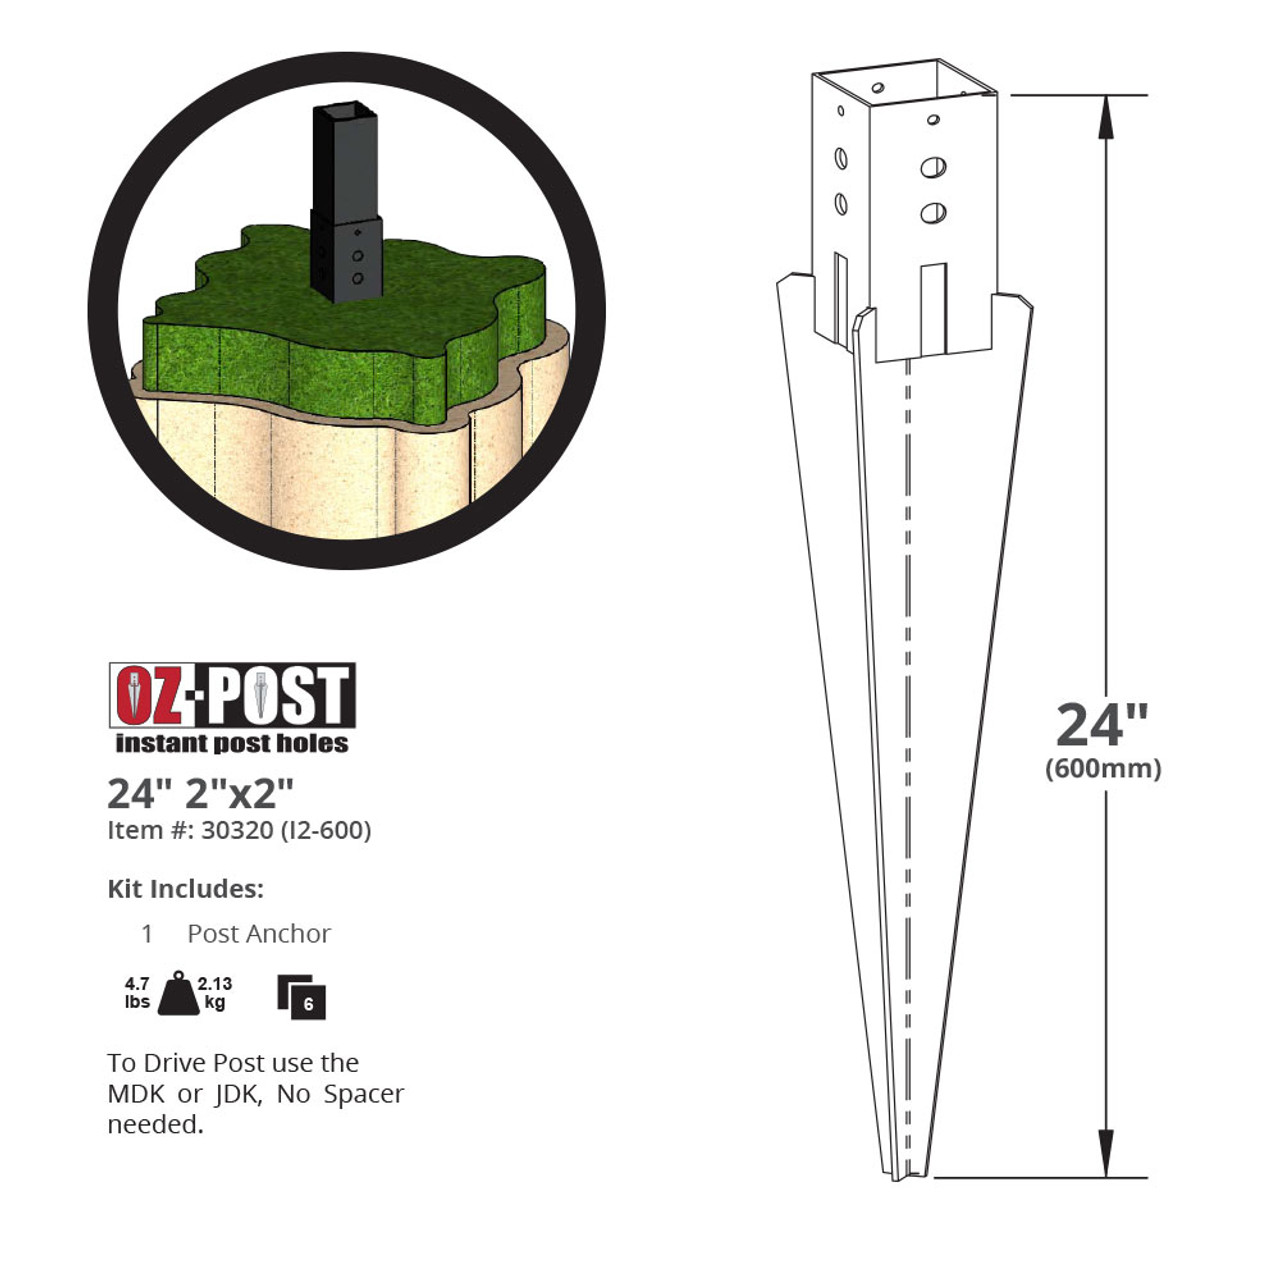 OZCO I2-600 Ornamental Post Anchor Dimension Drawing